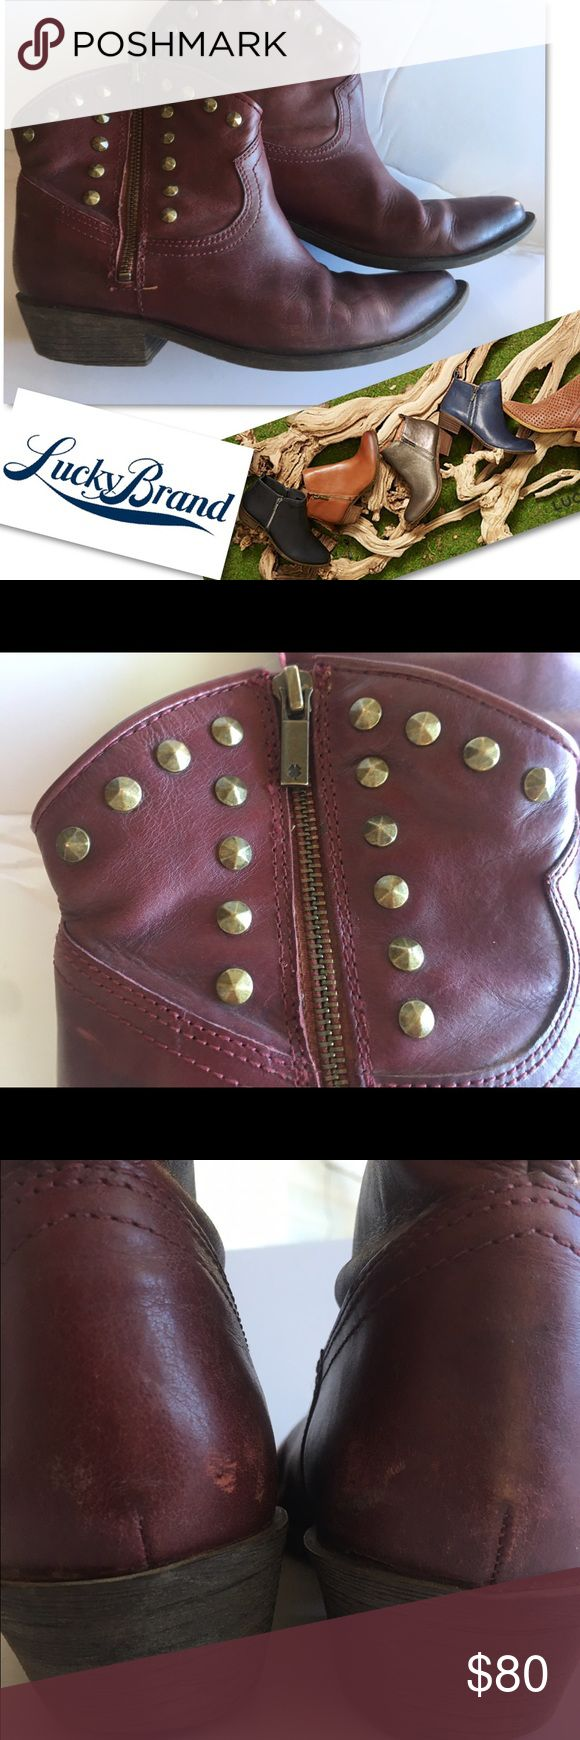 LUCKY BRAND BROWN STUDDED SHOES ANKLE BOOTS SZ 7.5 LUCKY BRAND  BROWN STUDDED SHOES ANKLE BOOTS SZ 7.5 RETAILS $139 Lucky Brand Shoes Ankle Boots & Booties